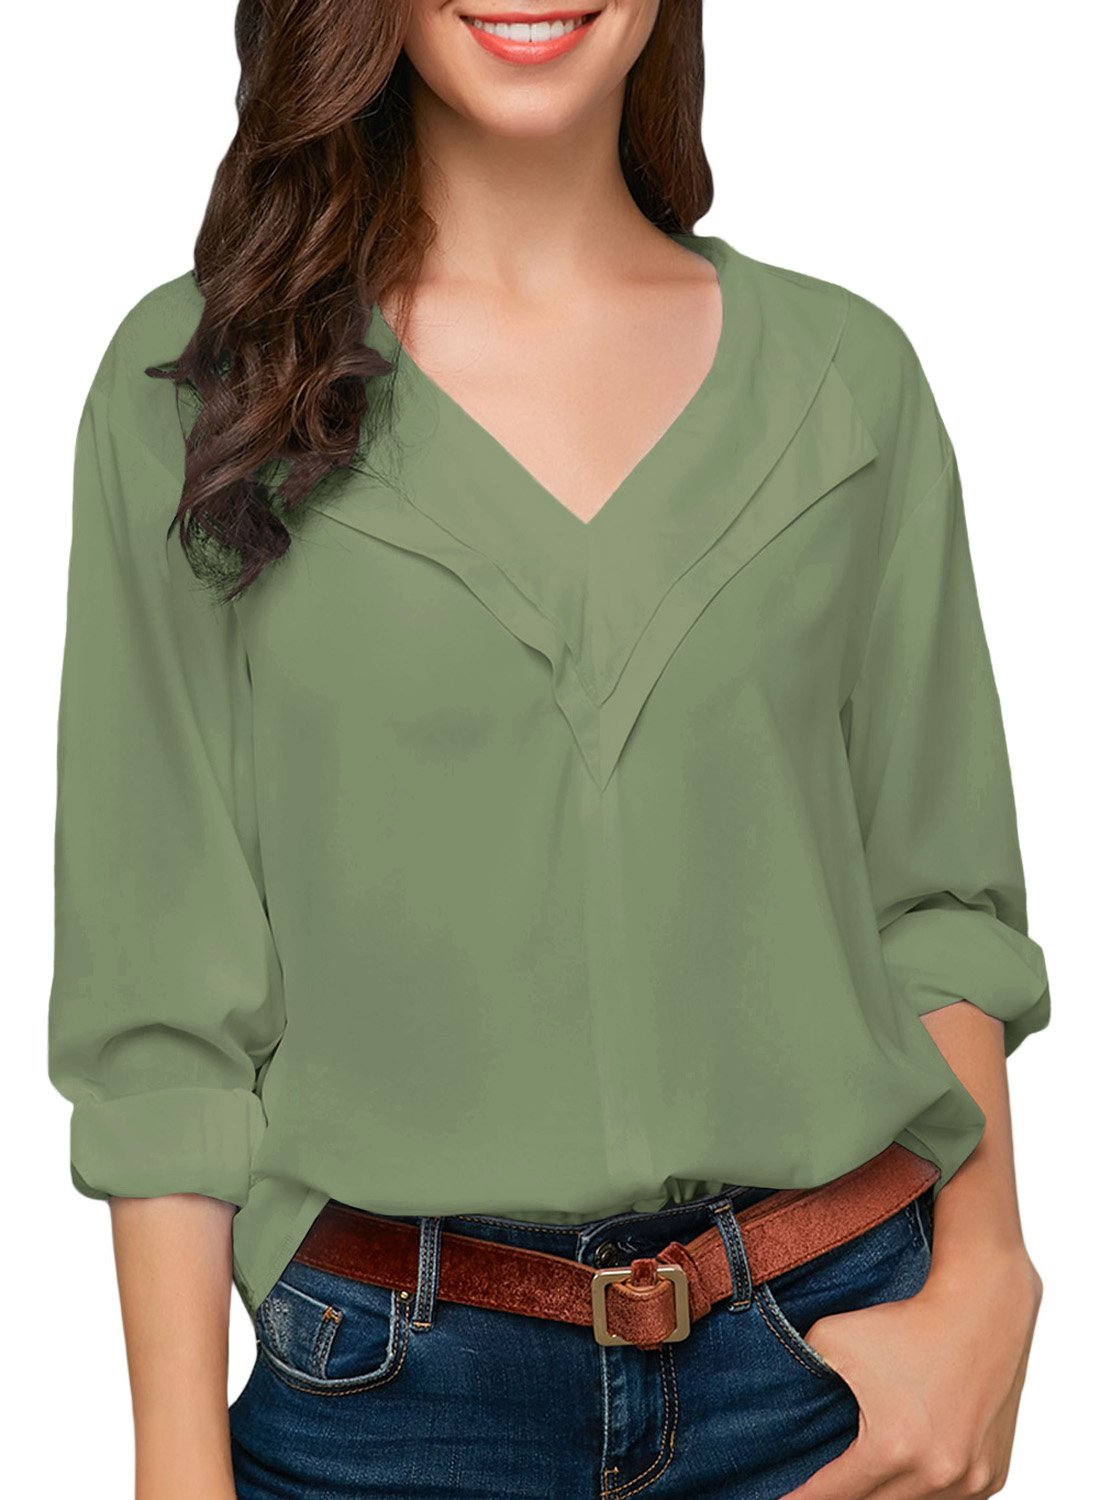 Women Long Sleeve Novelty Blouses Sexy V Neck Fashion Solid Basic Chiffon Blouse Shirts to Work Green Tops S 4 6